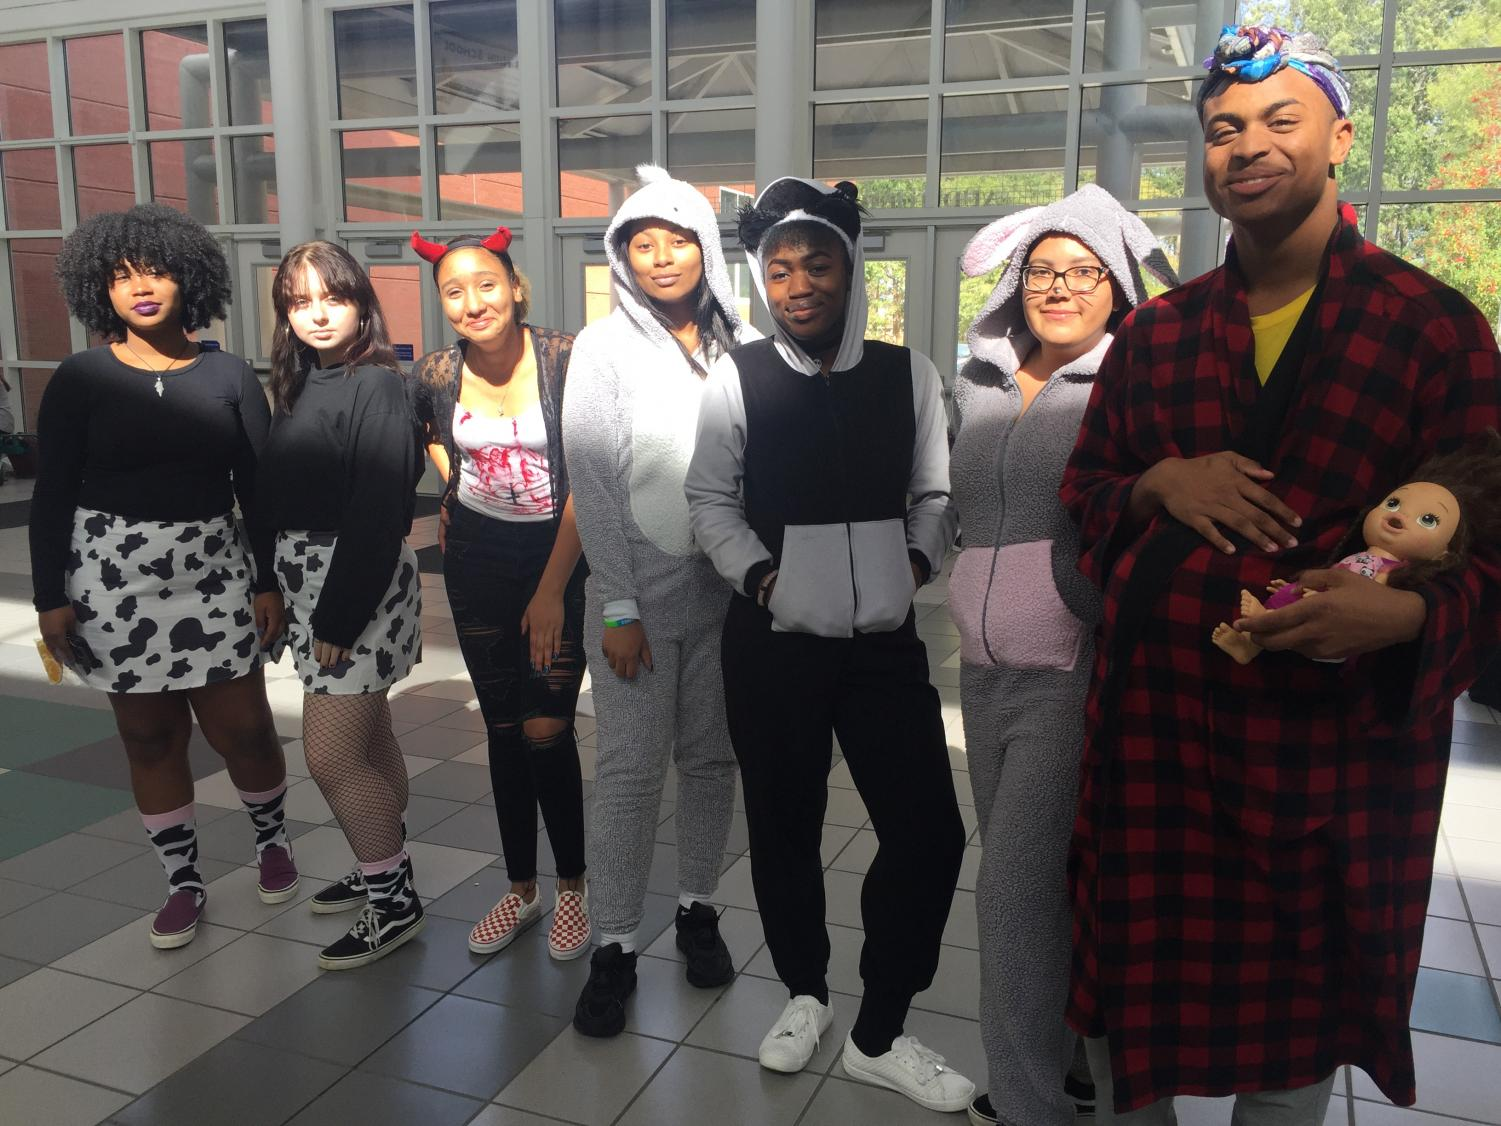 During one lunch students compared costumes, Photo taken on Oct. 31.